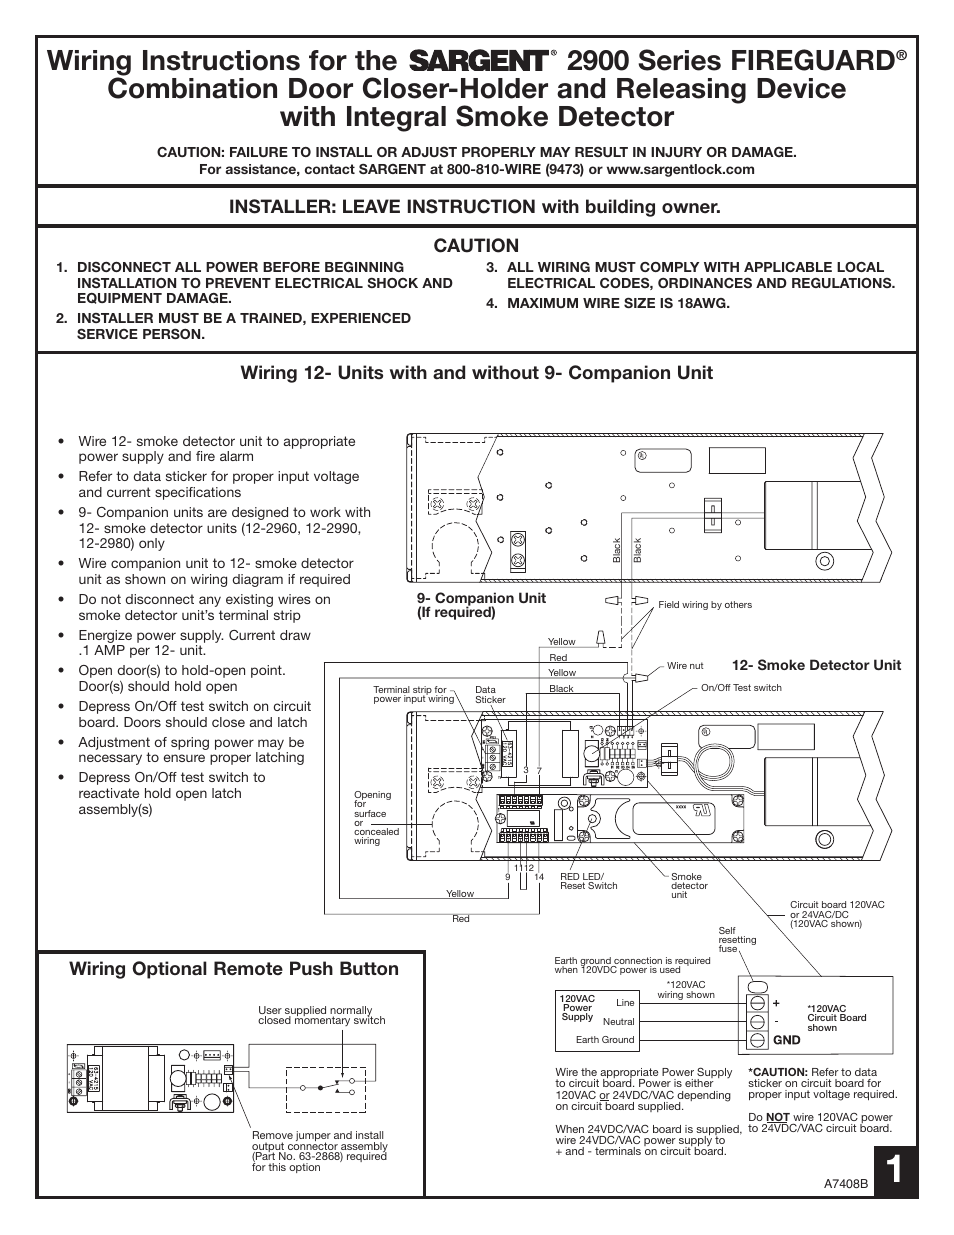 Sargent 2900 Fire Guard Electromechanical Closer Holder User Manual Wiring Diagram 8 Pages